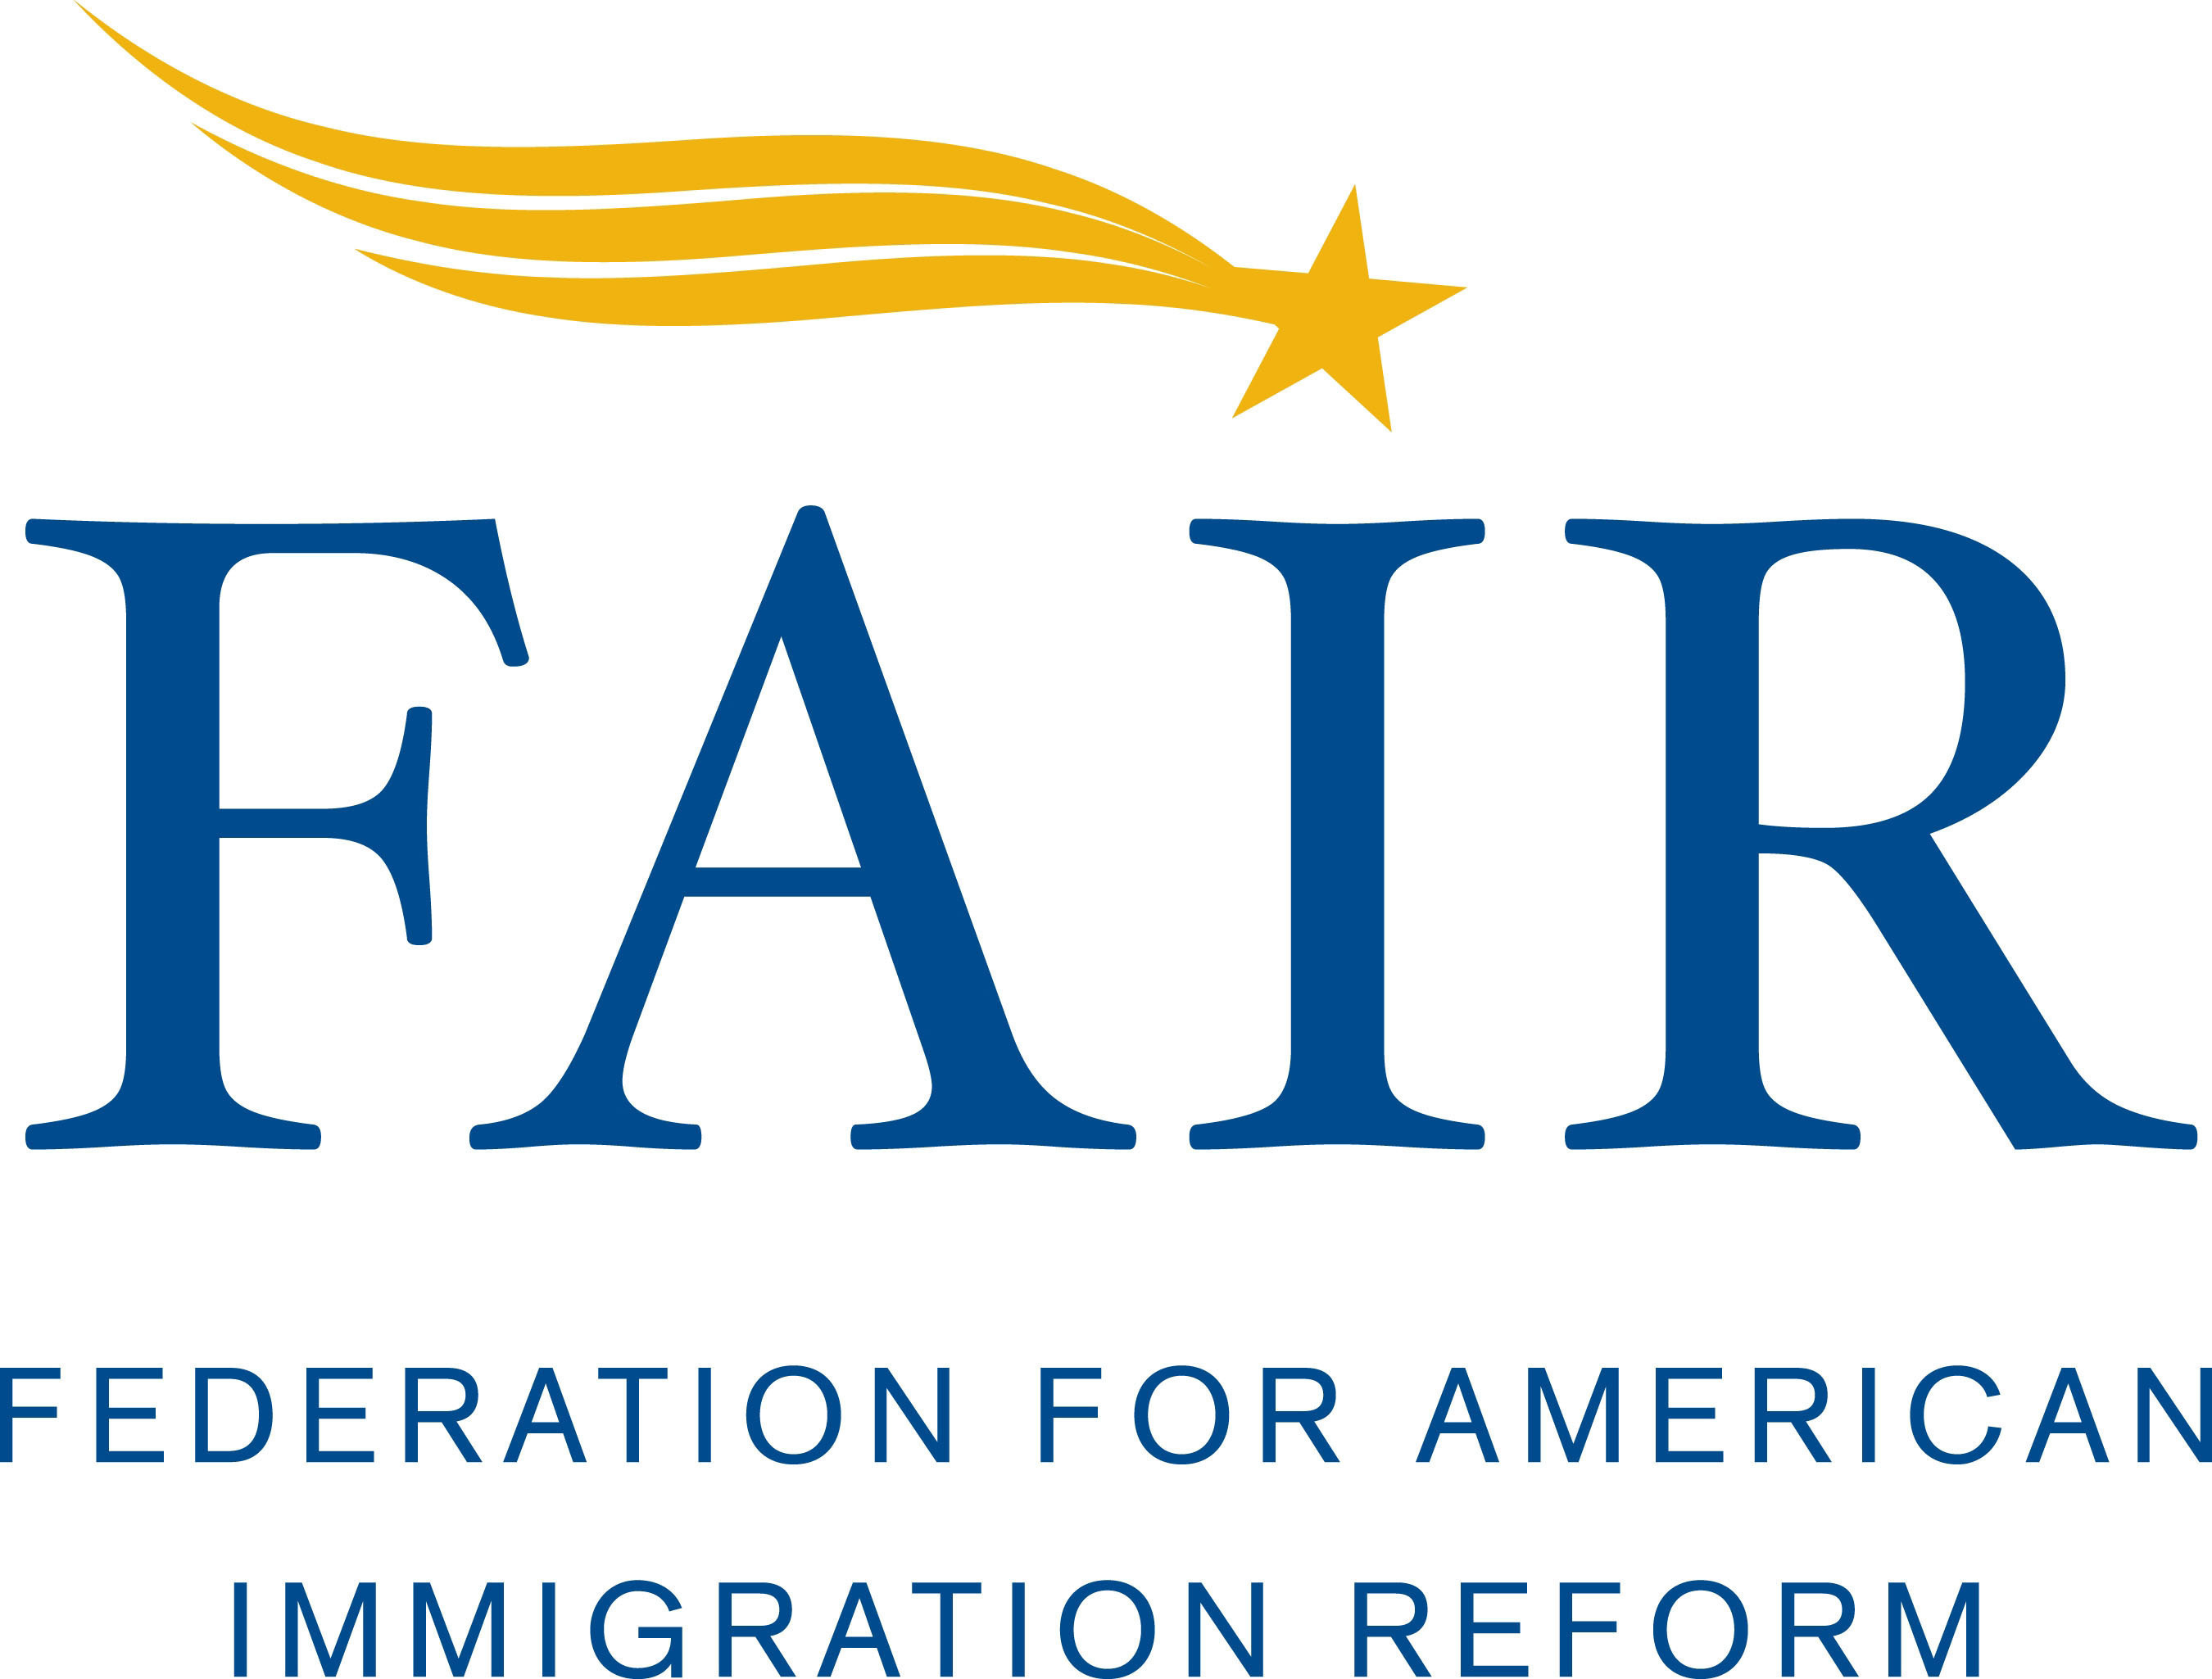 The Federation for American Immigration Reform (FAIR) is a national, nonprofit, public-interest, membership organization of concerned citizens who share a common belief that our nation's immigration policies must be reformed to serve the national interest. Visit FAIR's website at www.fairus.org.